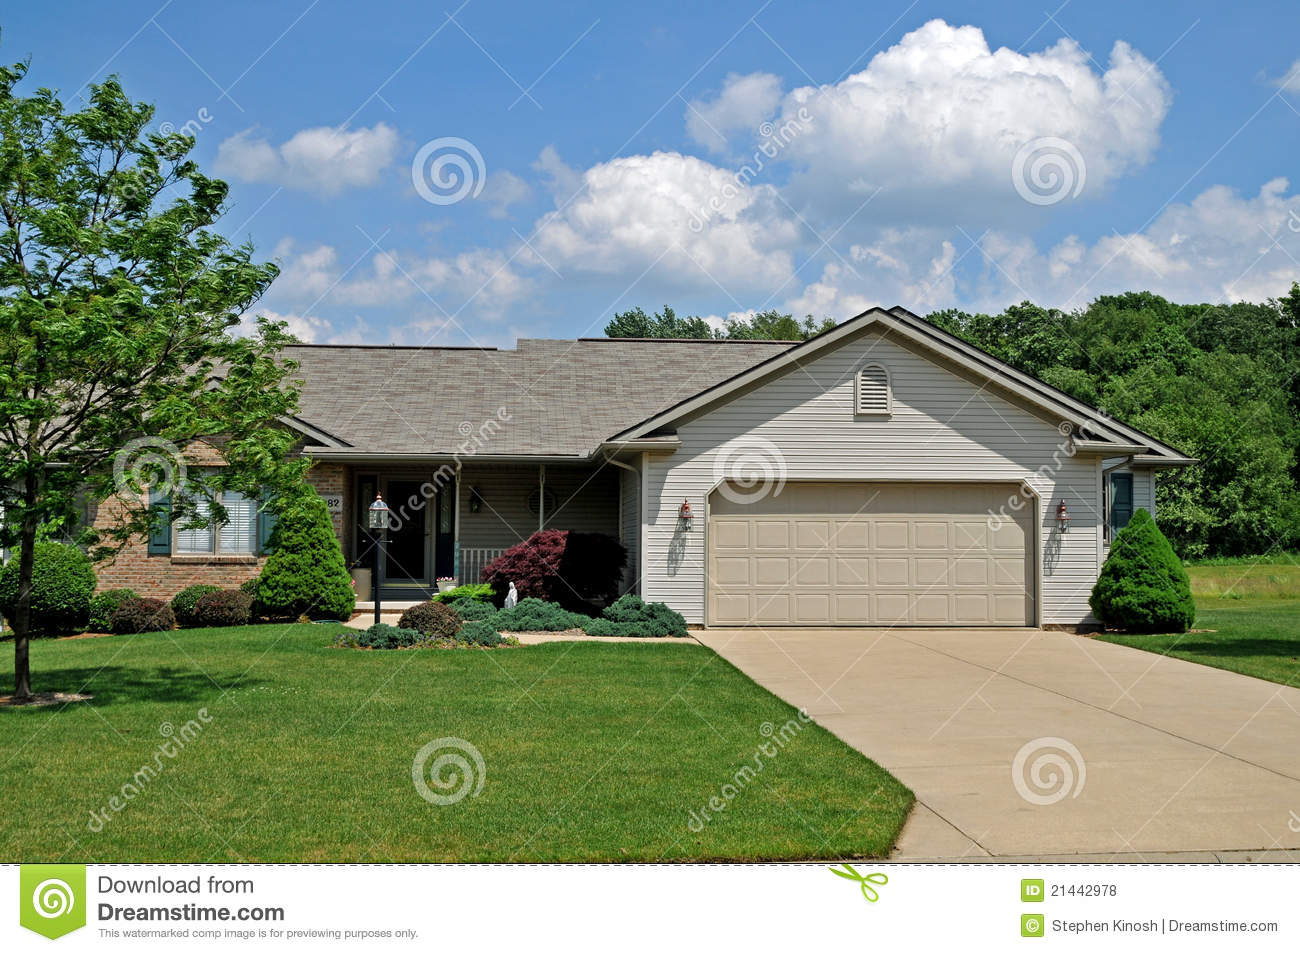 Modern ranch style home royalty free stock photos image for Modern ranch style homes